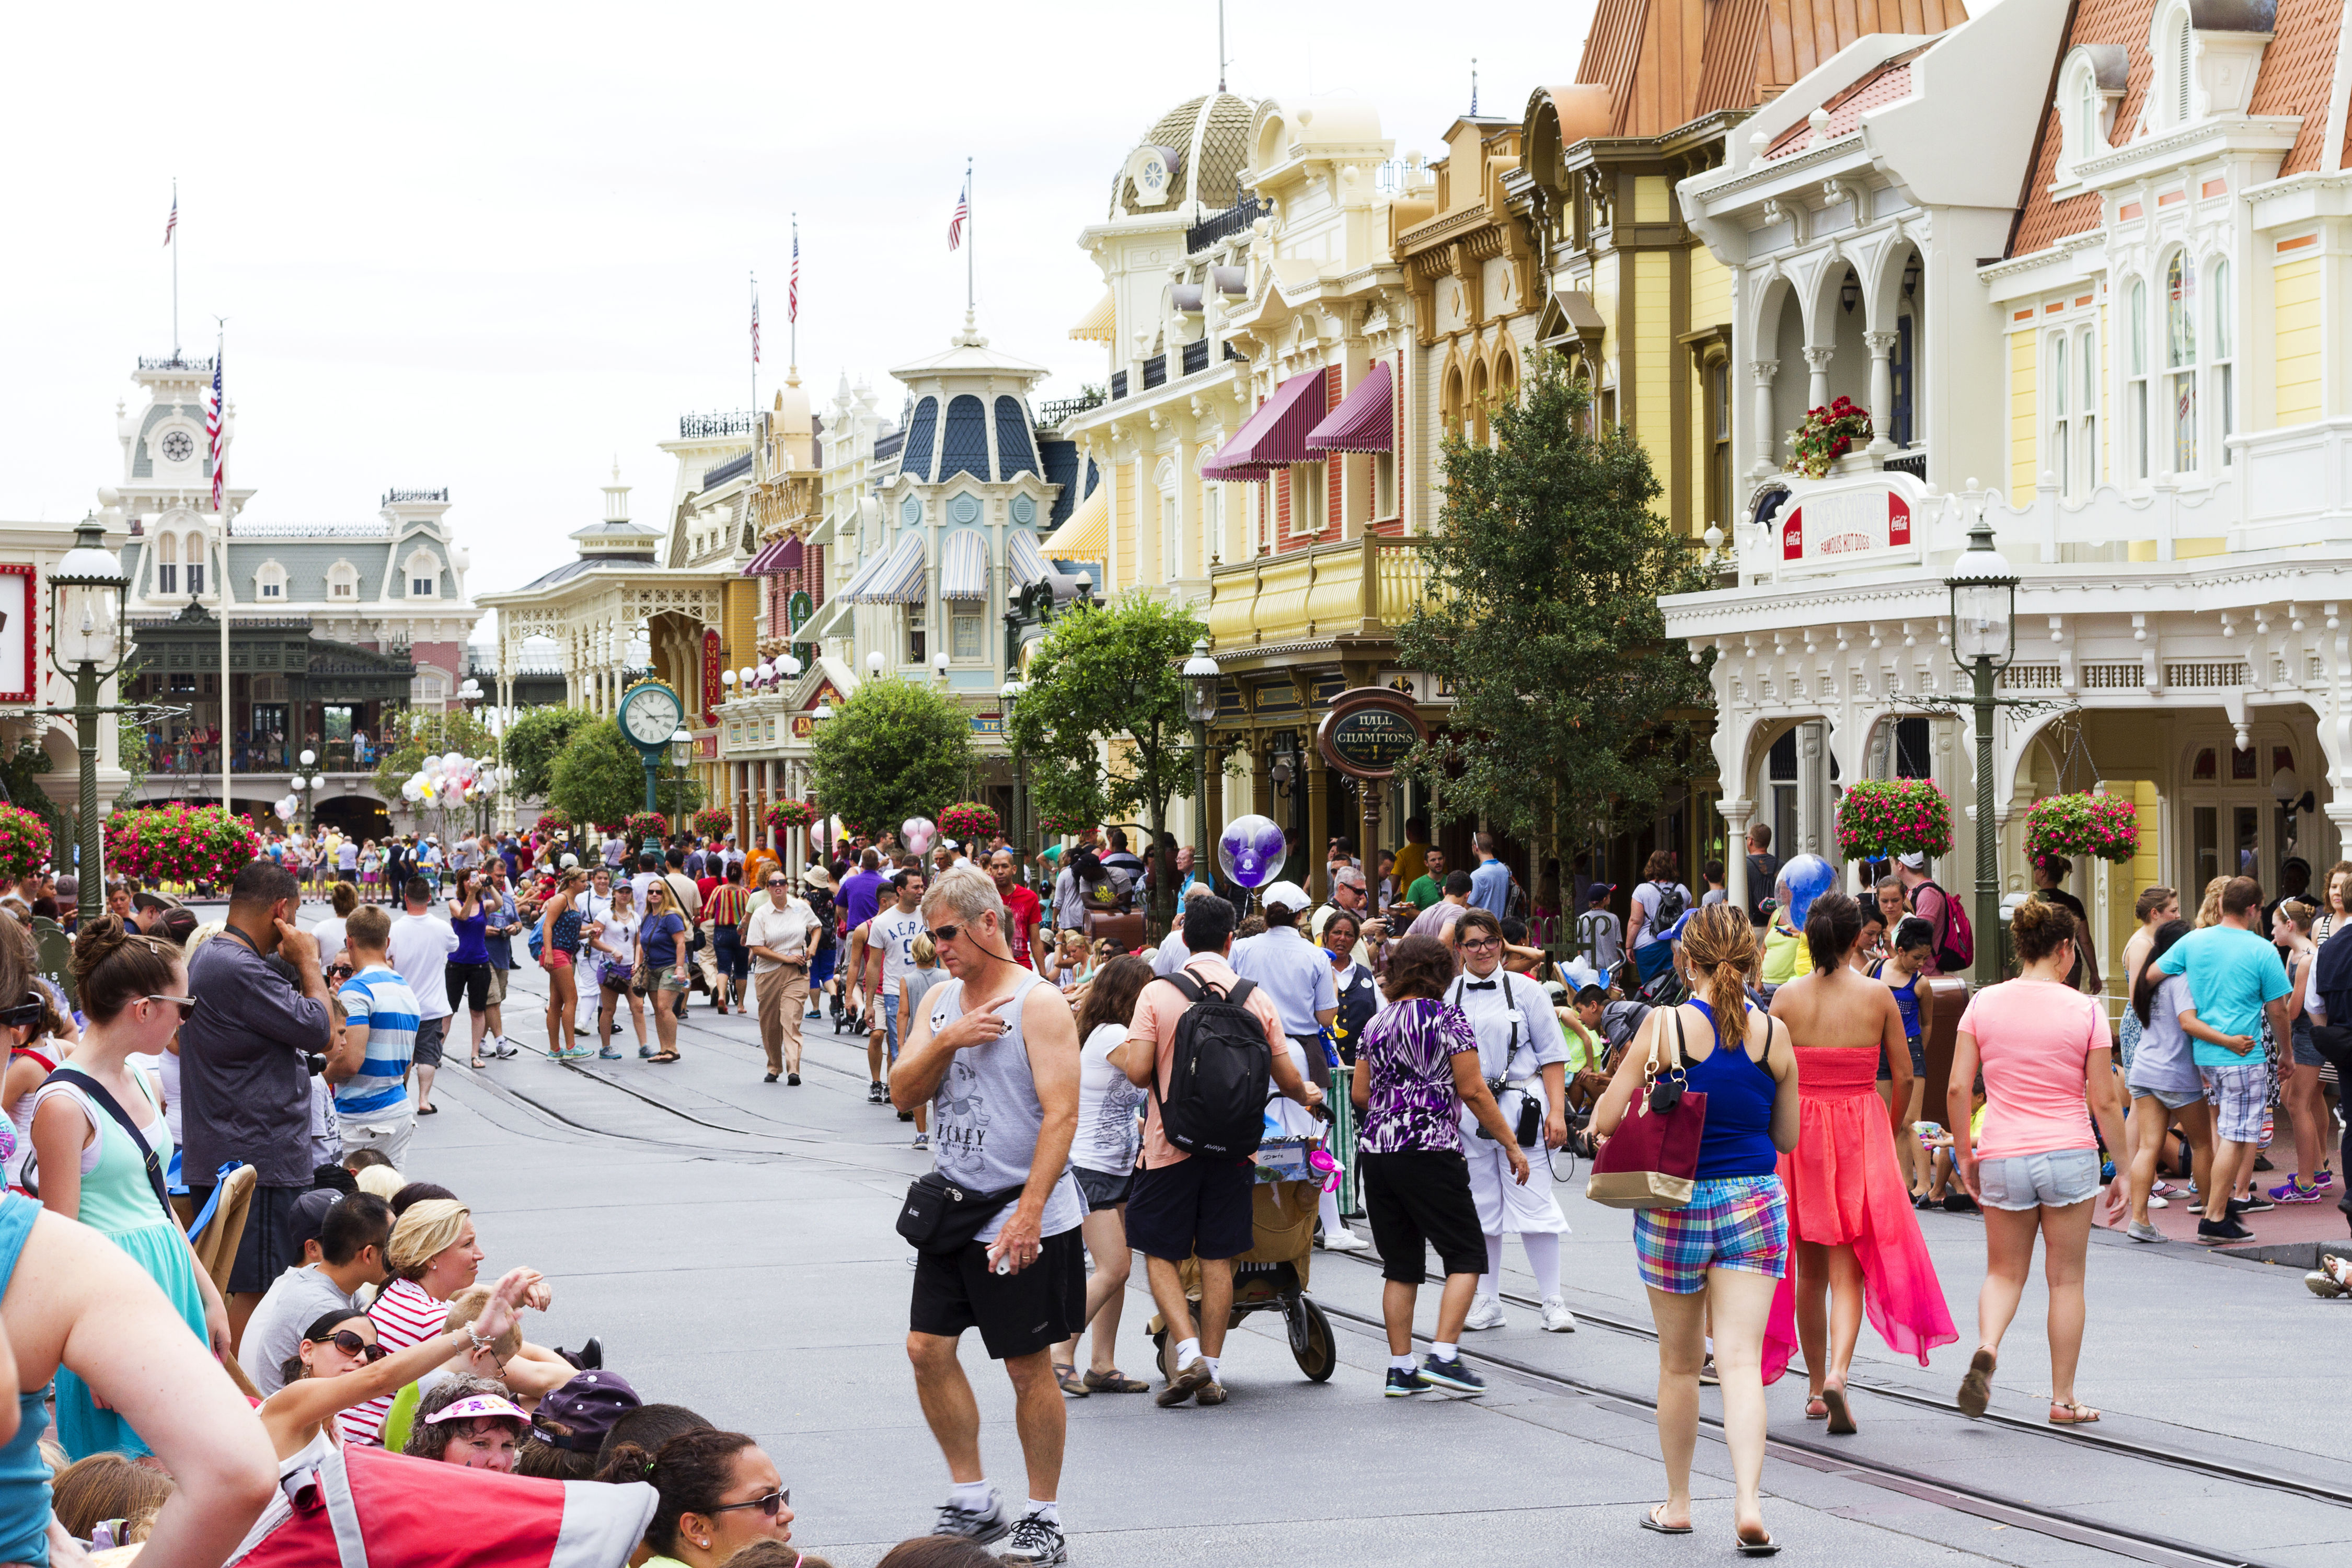 The Surprising Theory Why Disney Parks Don't Sell Gum